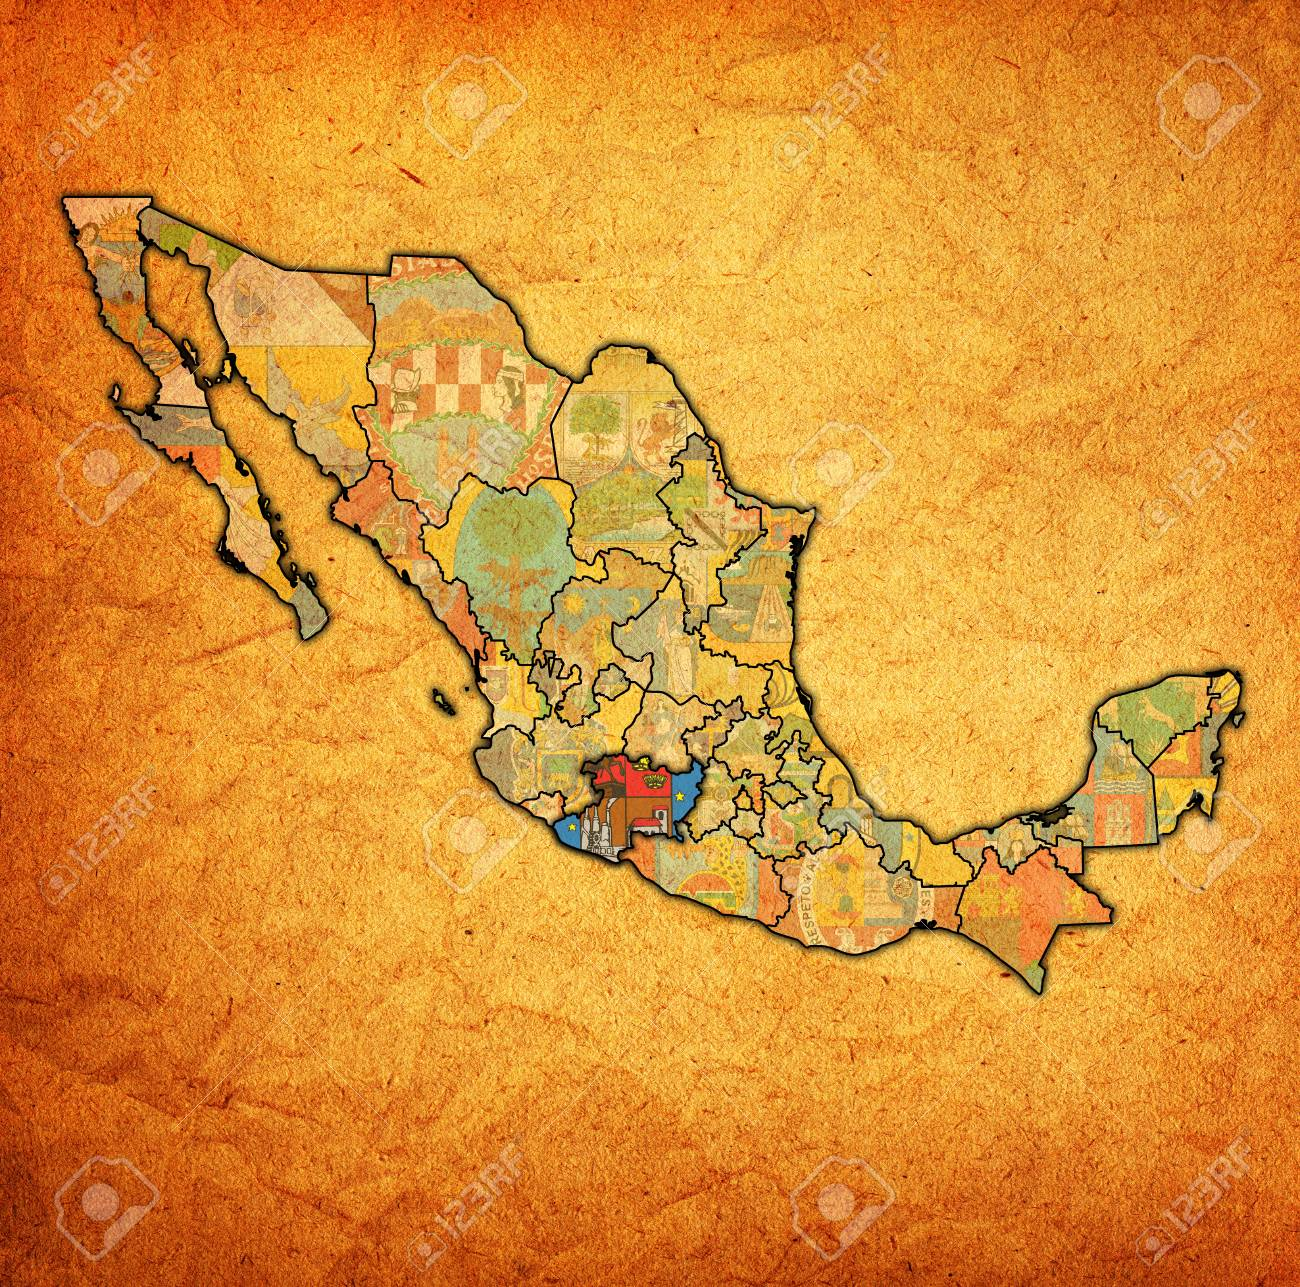 Michoacan State Map.Emblem Of Michoacan State On Map With Administrative Divisions